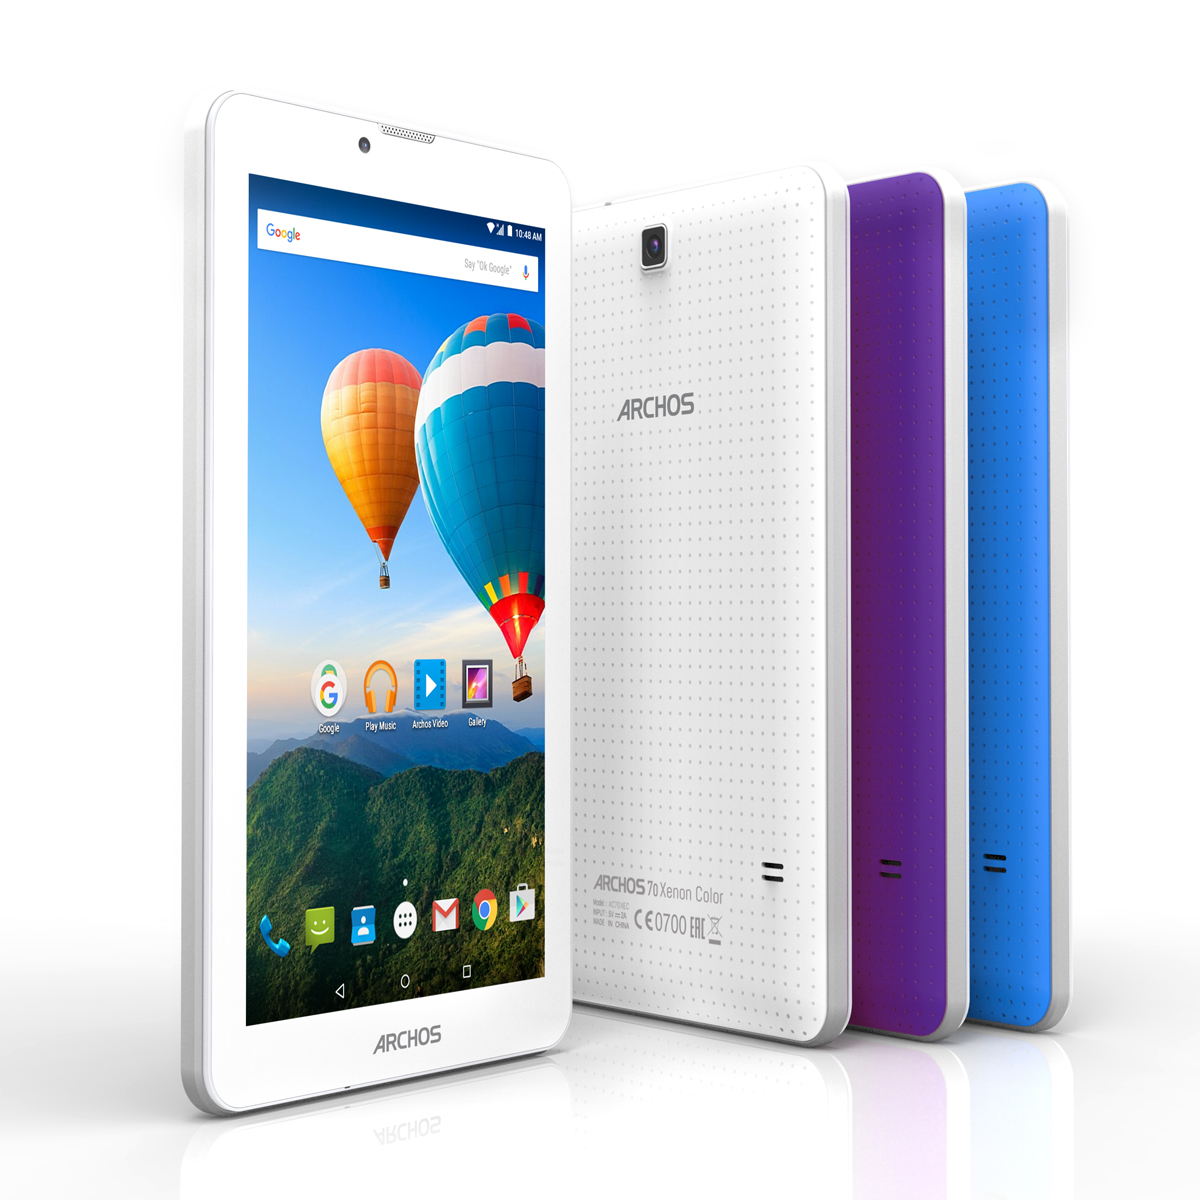 "Tablette tactile Archos 70 Xenon Color 8 Go Tablette Internet 3G - Mediatek MT8321 Quad-Core 1.3 GHz 1 Go 8 Go 7"" IPS tactile Wi-Fi/Bluetooth/Webcam Android 5.1"